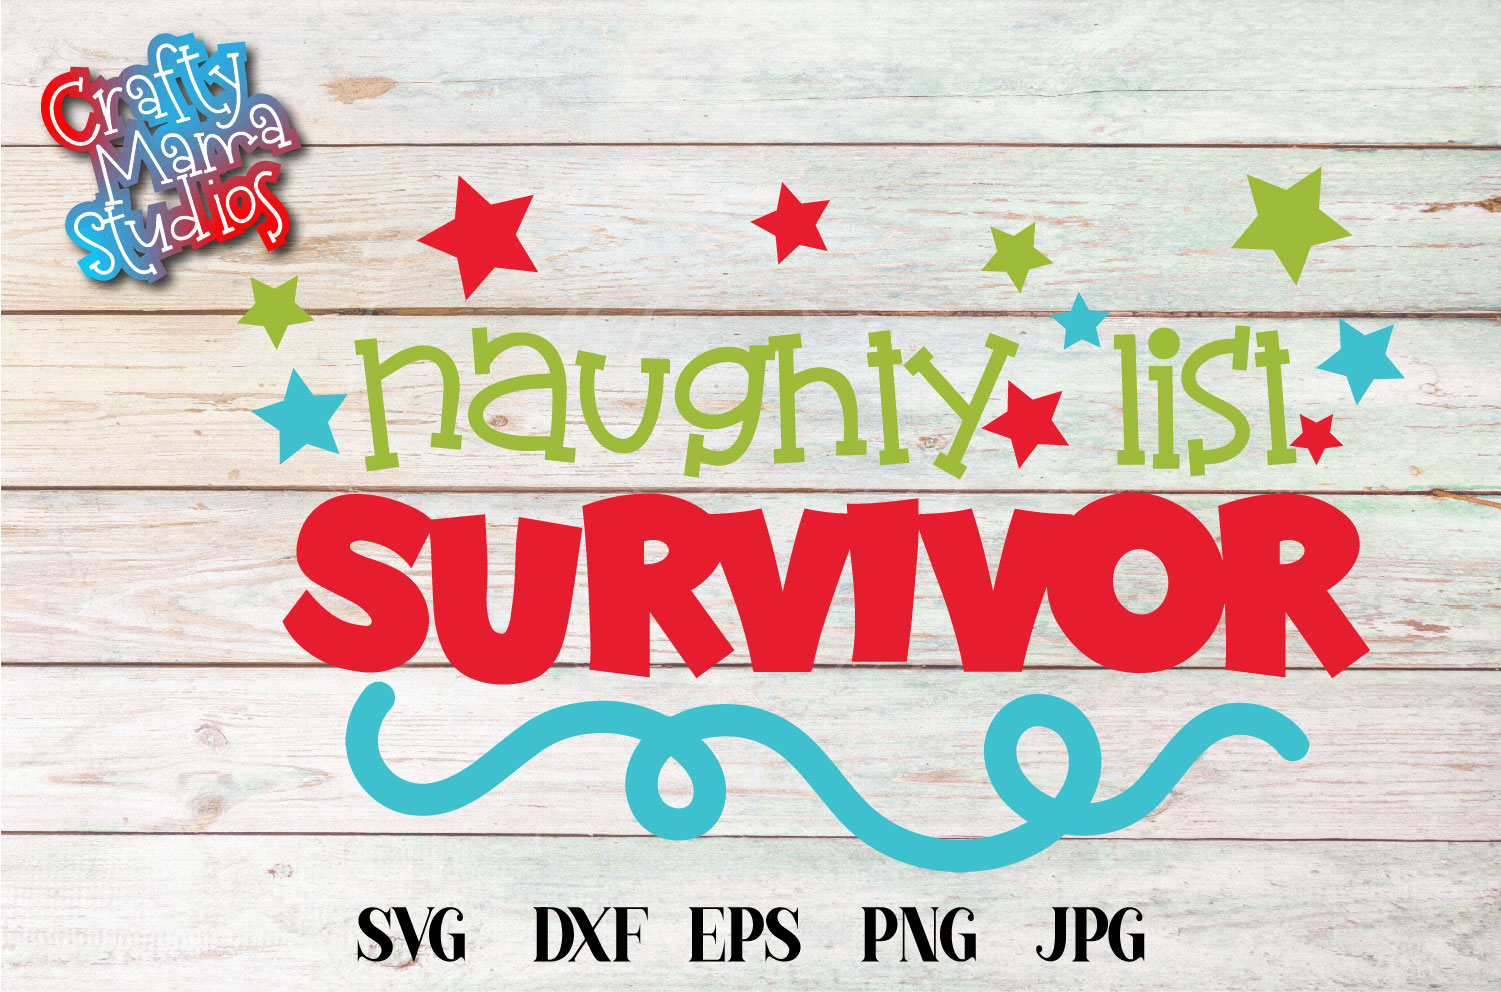 Christmas SVG, Naughty List Survivor SVG, Santa's List example image 2